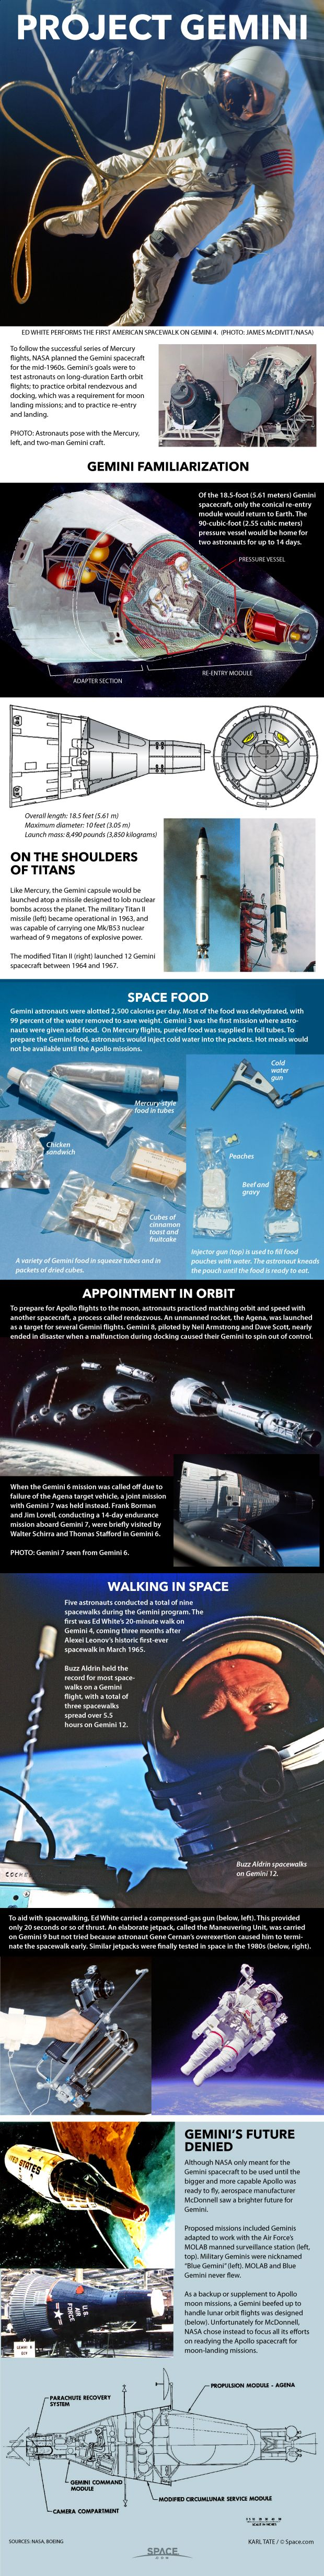 How NASA's Gemini Spacecraft Worked (Infographic) By Karl Tate, Infographics Artist ════════════════════════════ http://www.alittlemarket.com/boutique/gaby_feerie-132444.html ☞ Gαвy-Féerιe ѕυr ALιттleMαrĸeт   https://www.etsy.com/shop/frenchjewelryvintage?ref=l2-shopheader-name ☞ FrenchJewelryVintage on Etsy http://gabyfeeriefr.tumblr.com/archive ☞ Bijoux / Jewelry sur Tumblr